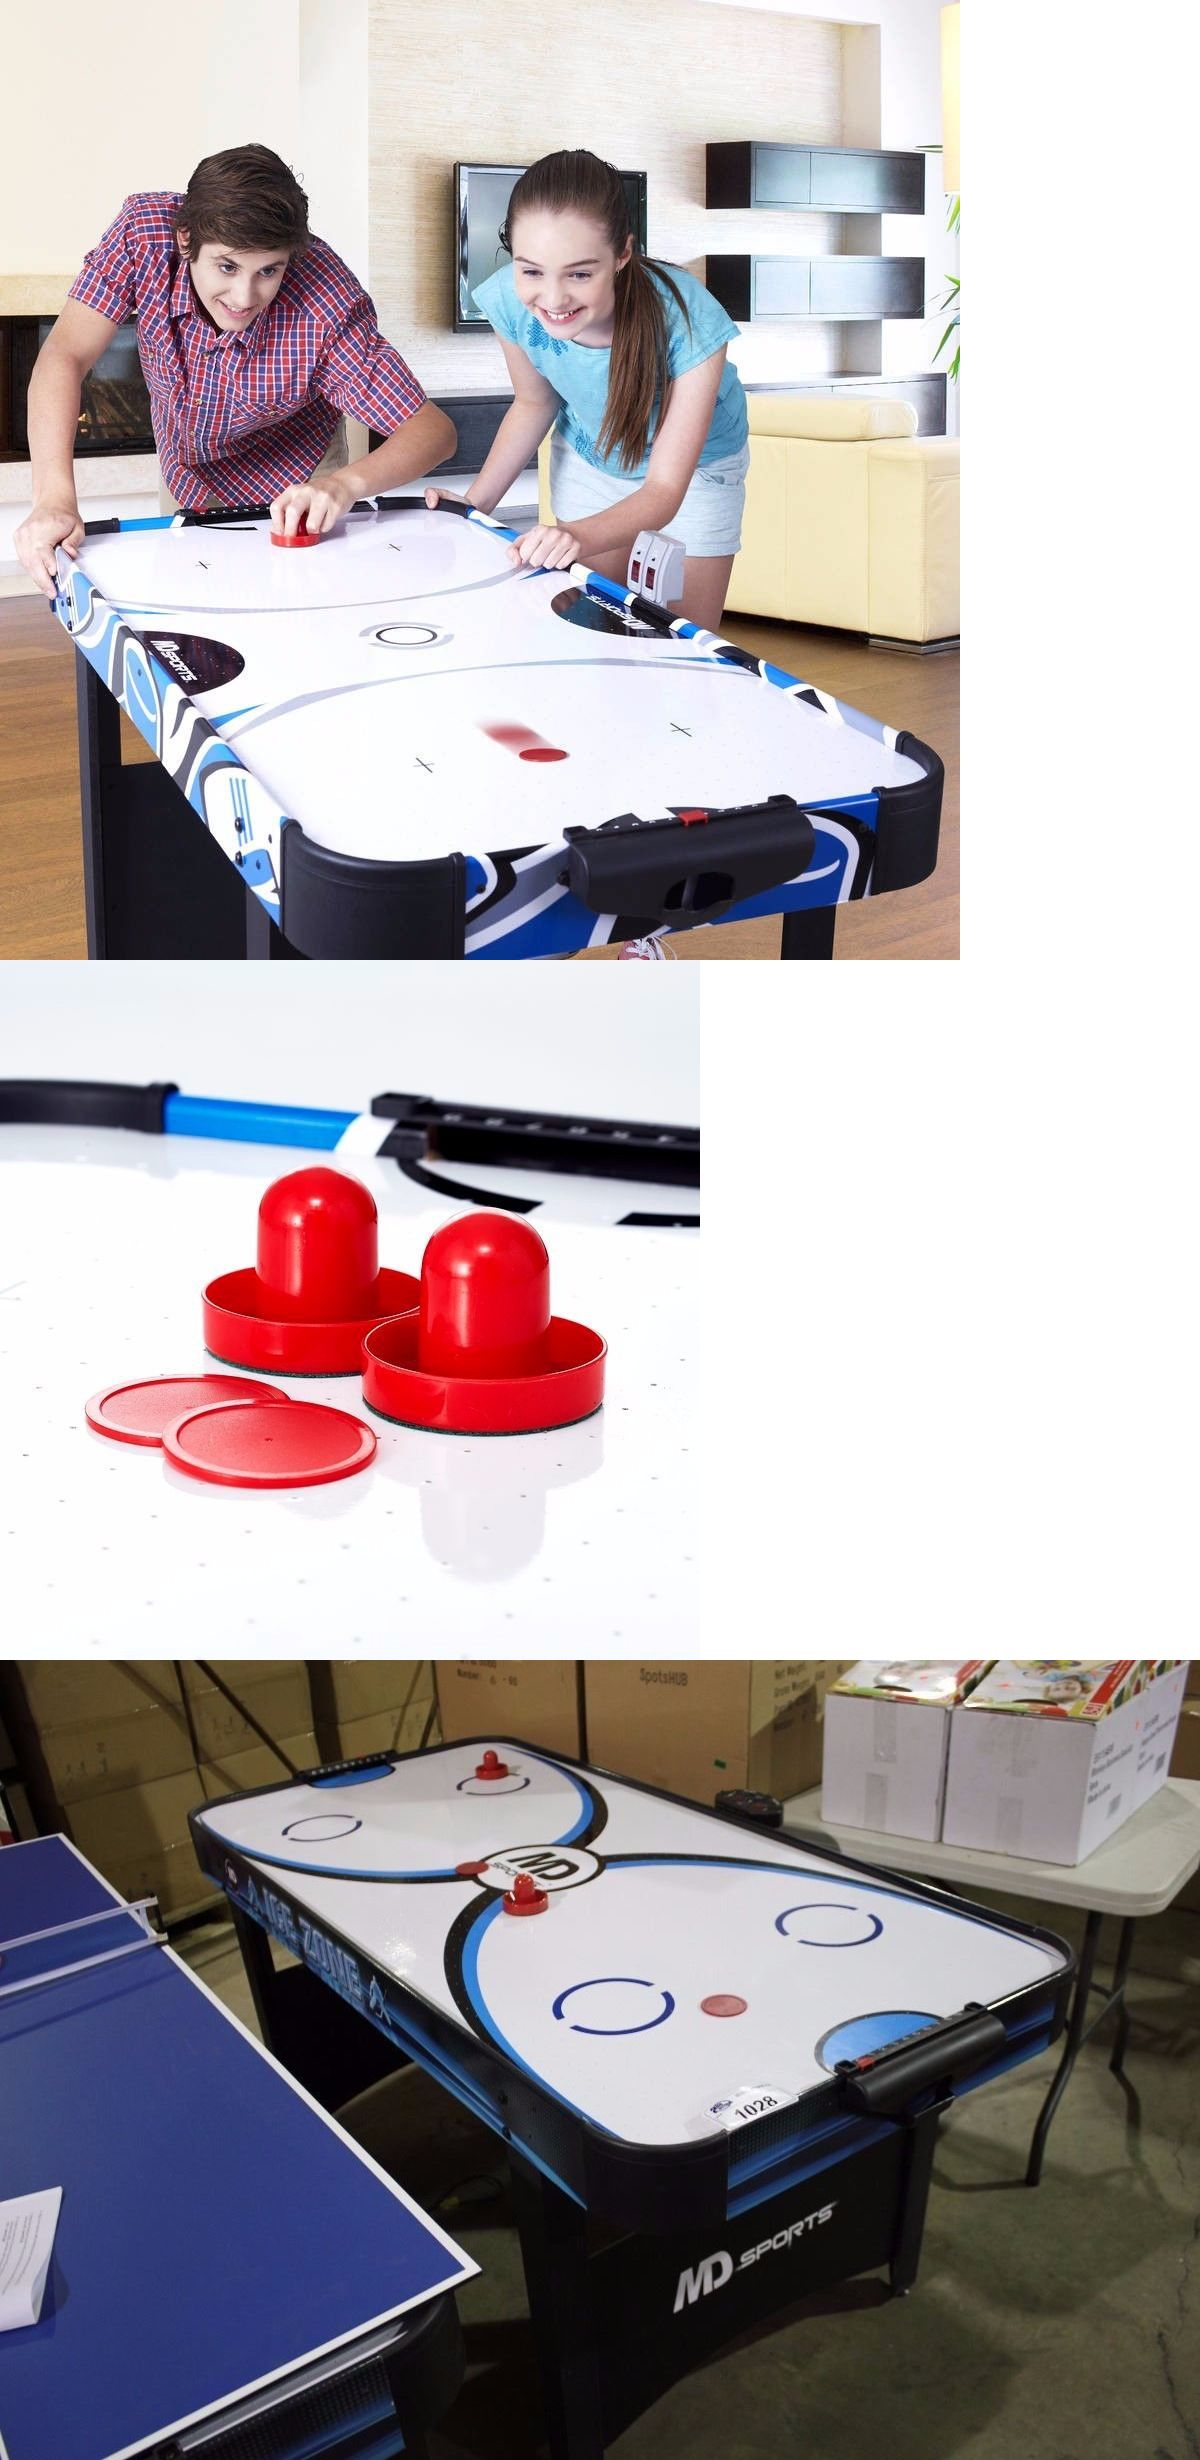 Air Hockey 36275: Md Sports 48 Inch Air Powered Hockey Table Accessories  Included  U003e